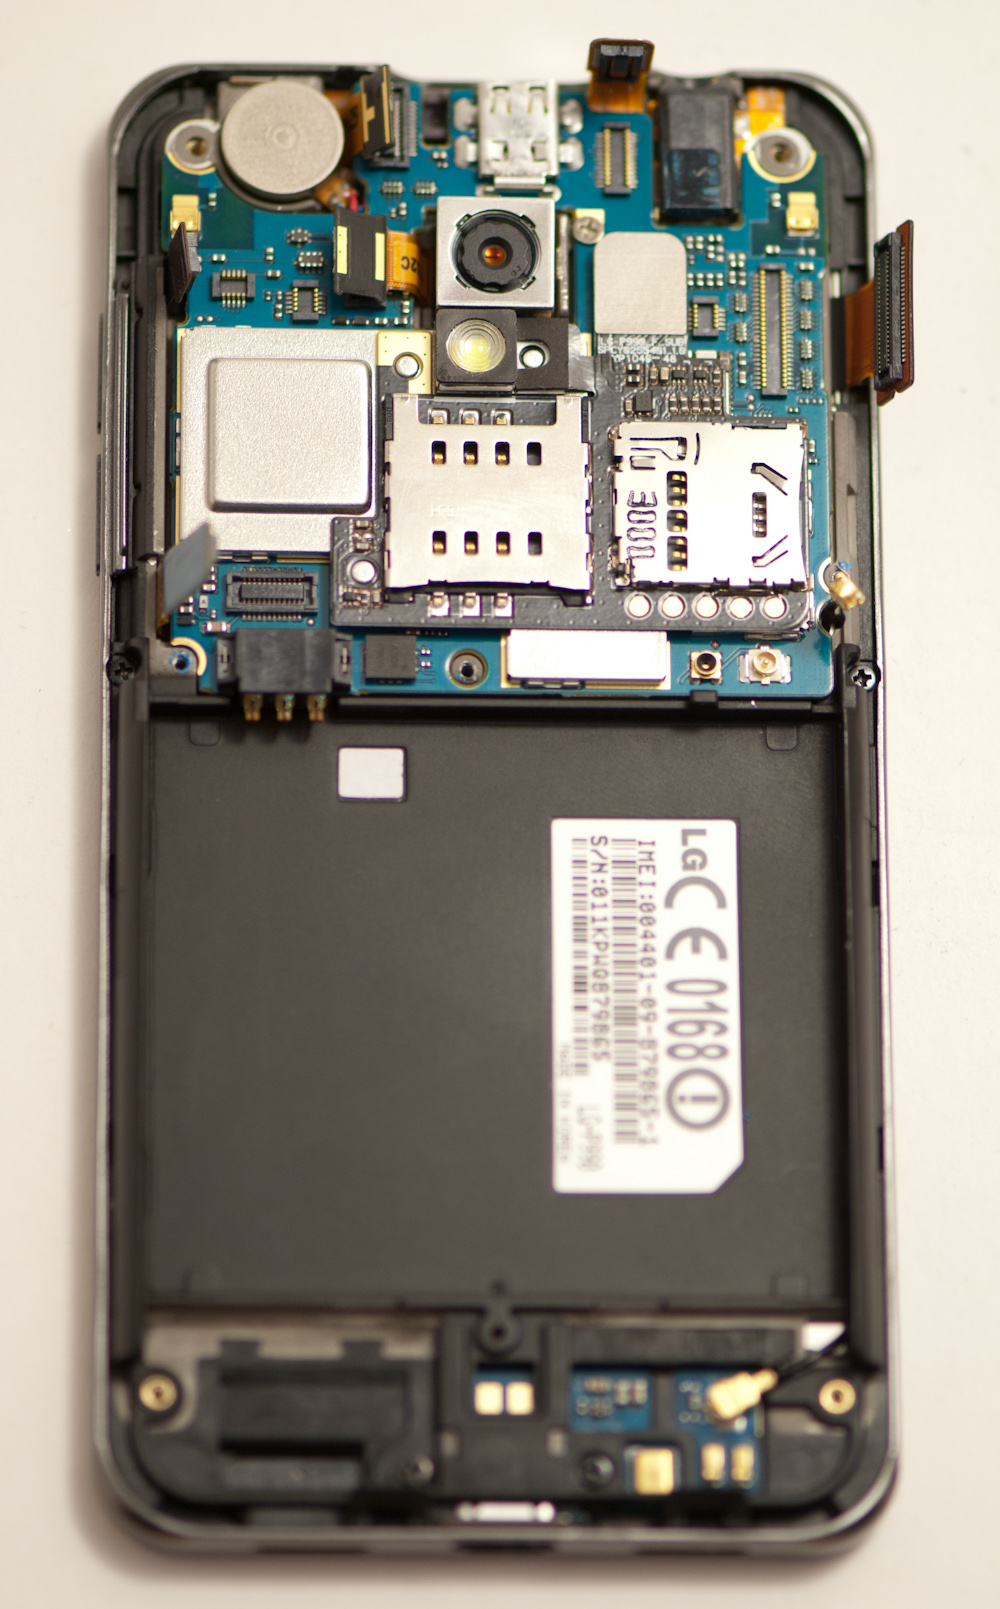 Baseband And Disassembling The Lg Optimus 2x Line Sim Bb9800 Short Circuit For Repair Gsmforum Unscrew Them Then Plastic Covers Easily Pop Out Revealing Interesting Goodies Underneath